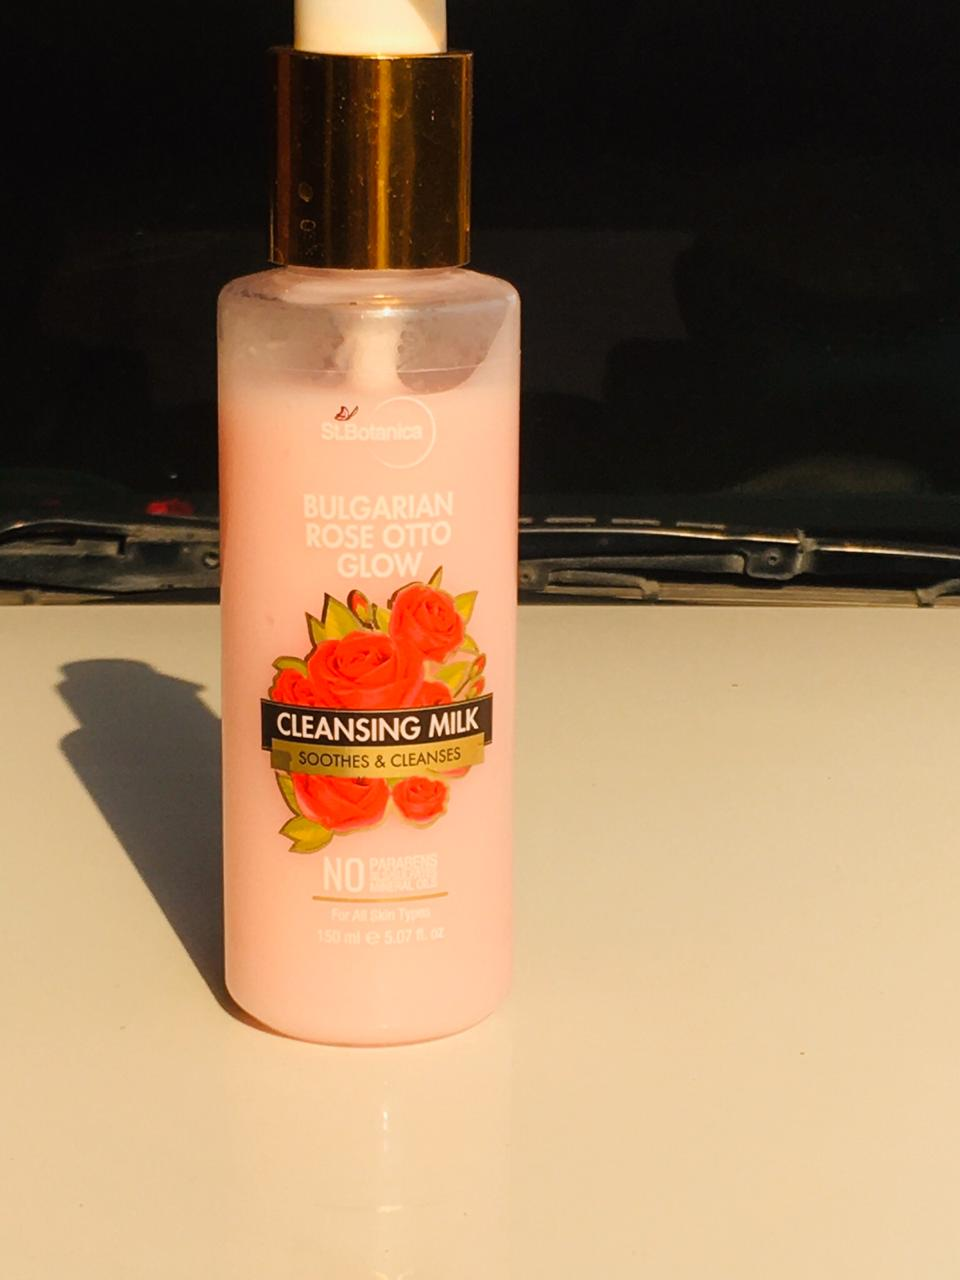 StBotanica Bulgarian Rose Otto Glow Cleansing Milk -Everyday cleanser-By mehak07